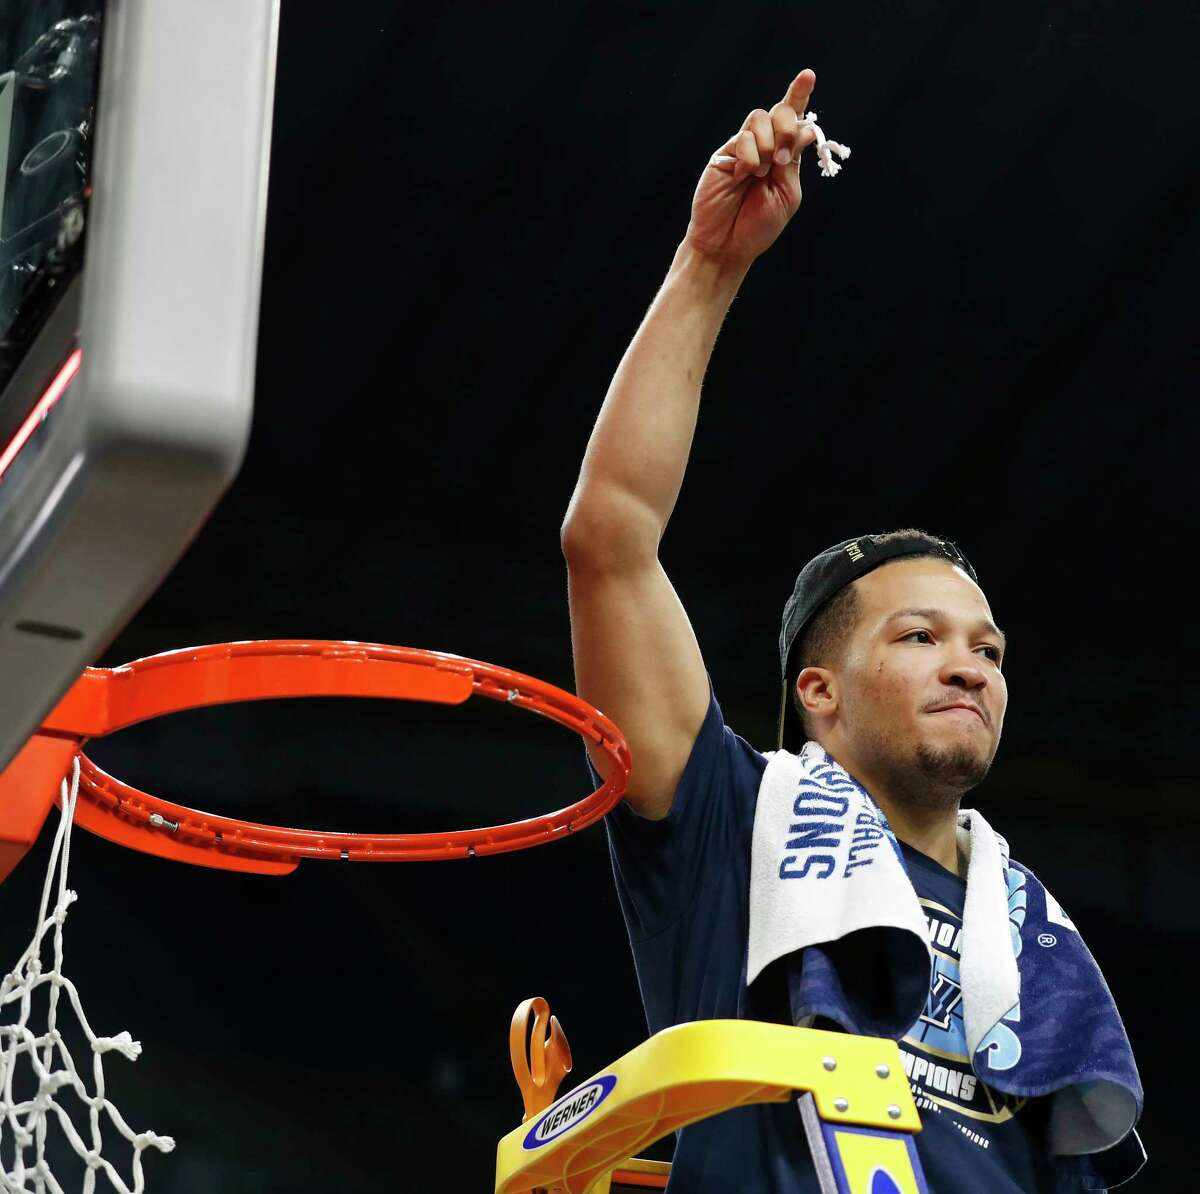 Villanova Wildcats' Jalen Brunson (1) cuts down the net after the NCAA Division I Men's National Championship Basketball game against the Michigan Wolverines held Monday April 2, 2018 at the Alamodome. Villanova Wildcats won 79-62.